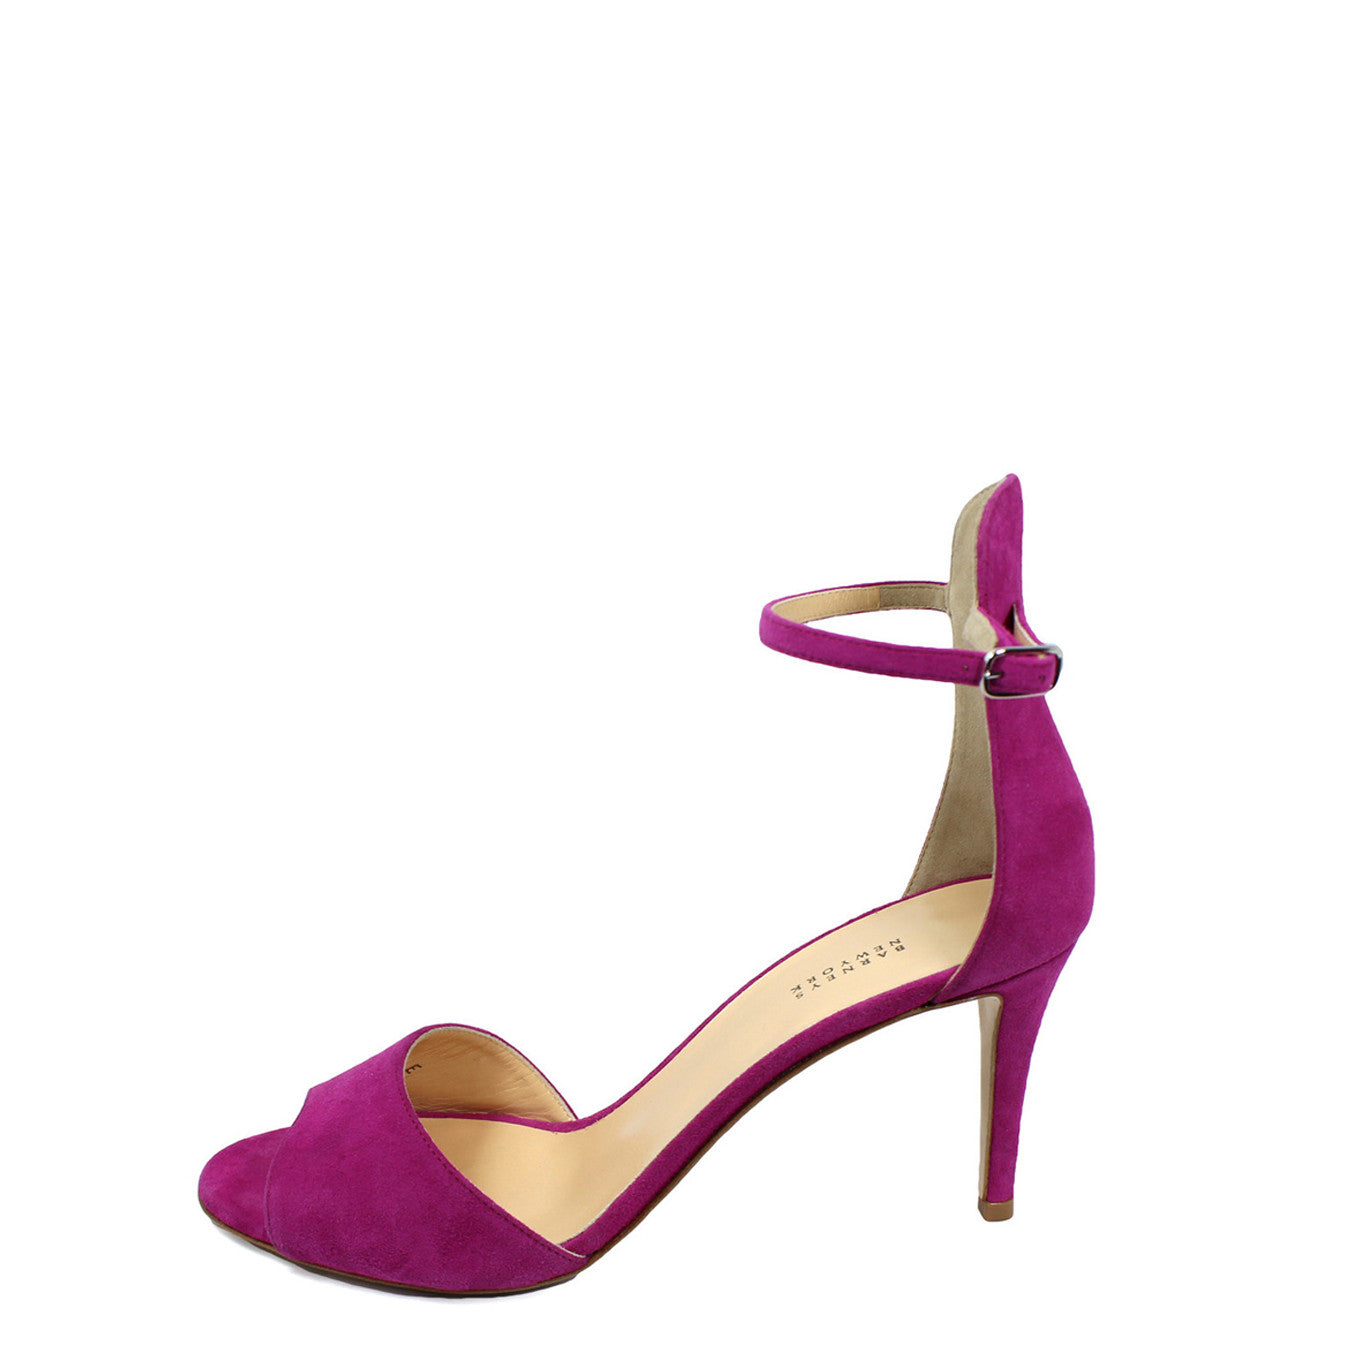 Barneys New York Fuchsia Suede Ankle Strap Sandals (Size 38.5) - Encore Consignment - 11